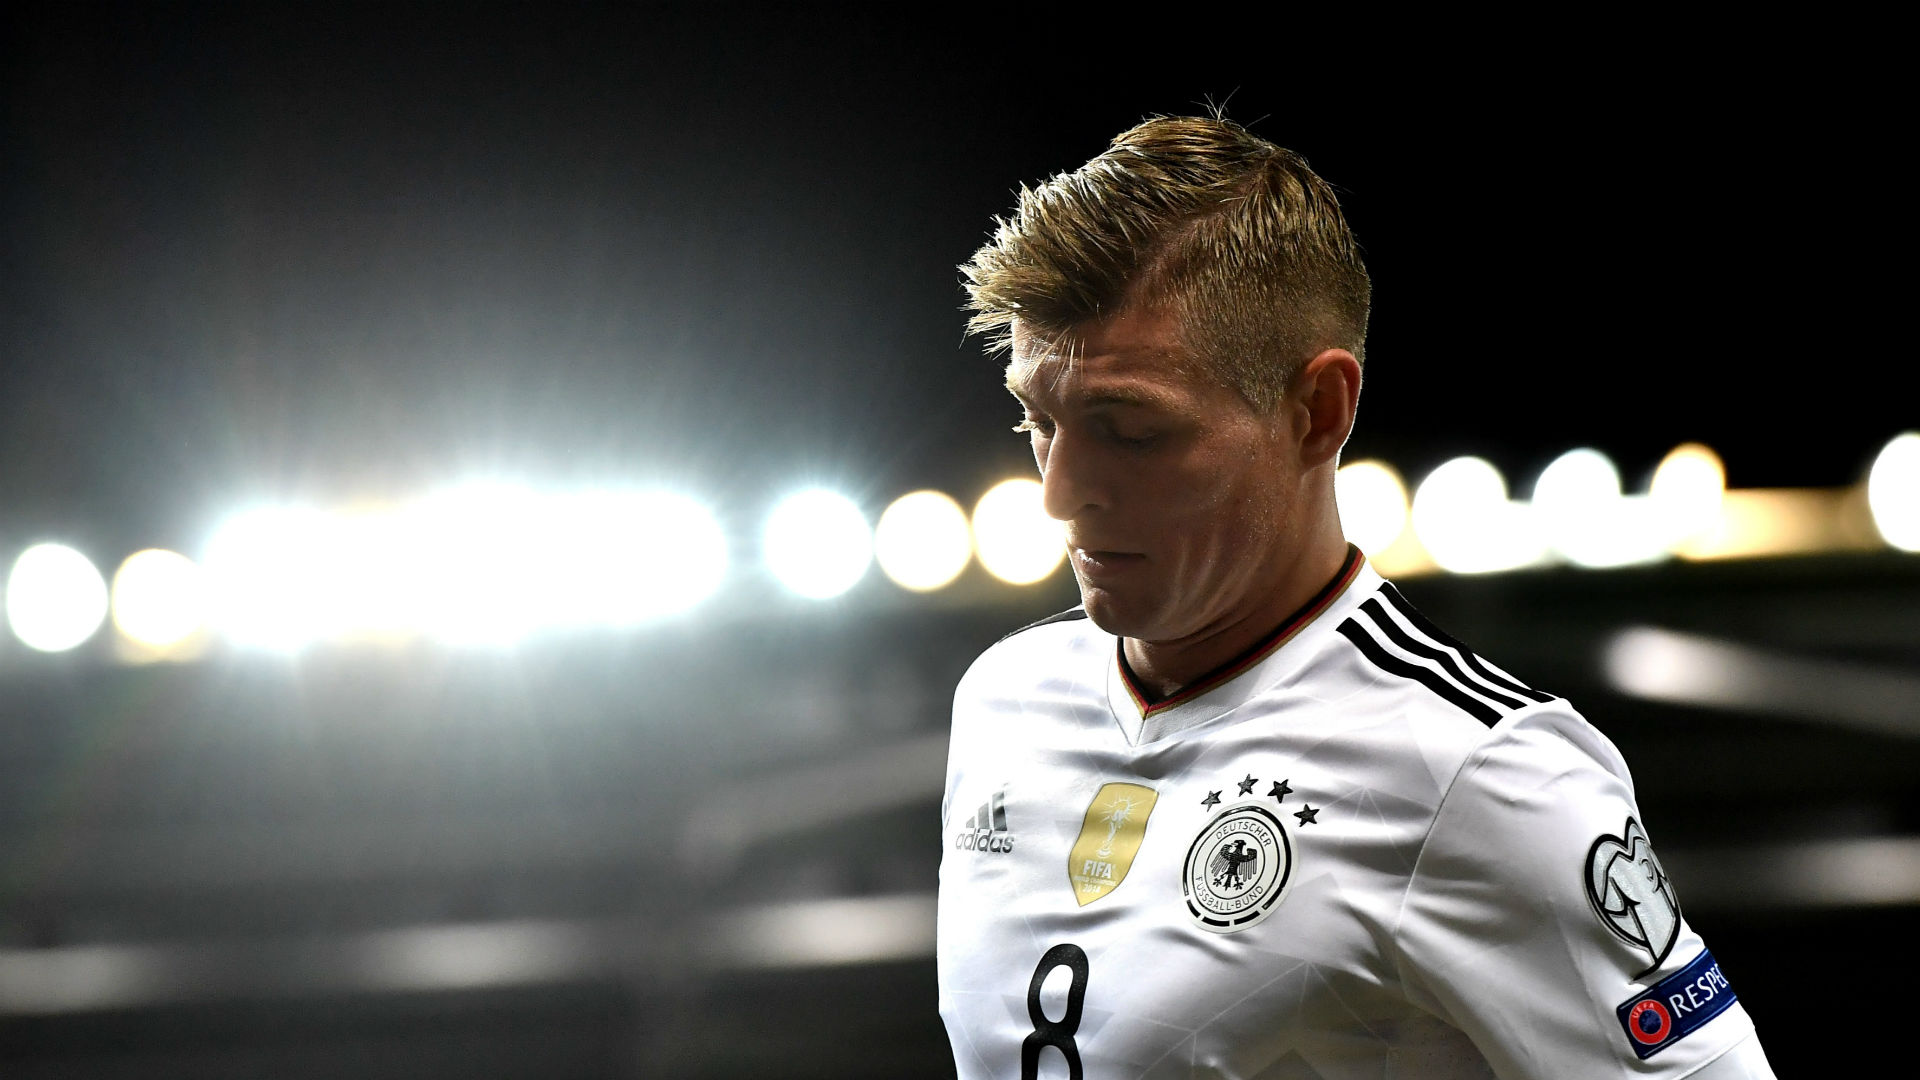 Unwell Kroos could be rested for Germany as Low plans to experiment against England